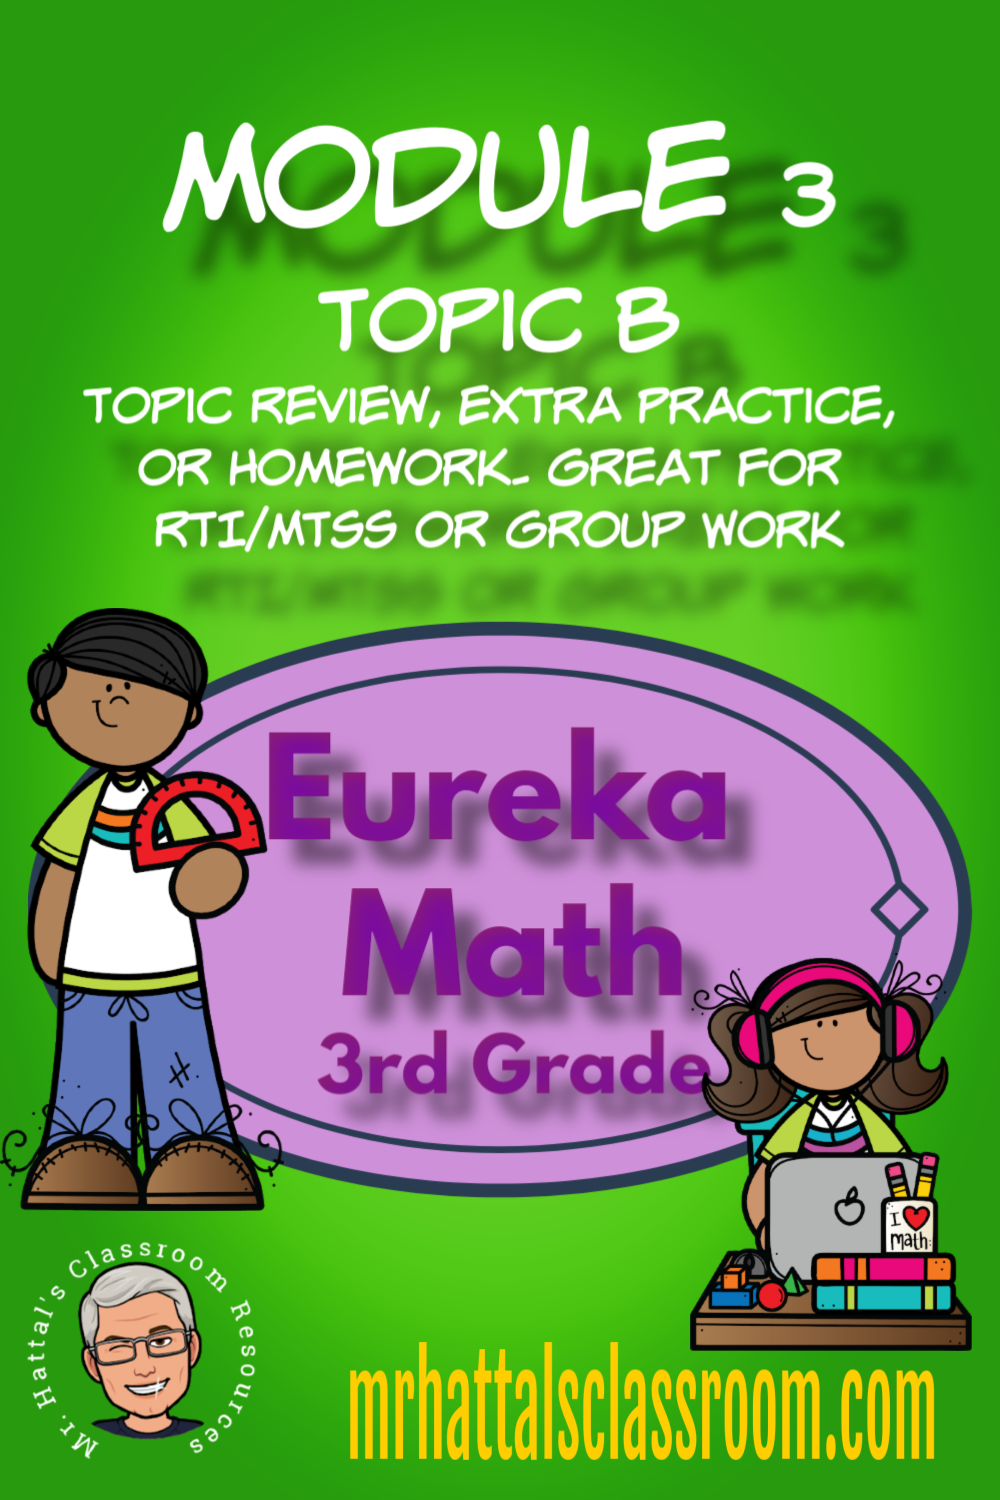 This resource provides extra practice for Eureka Math